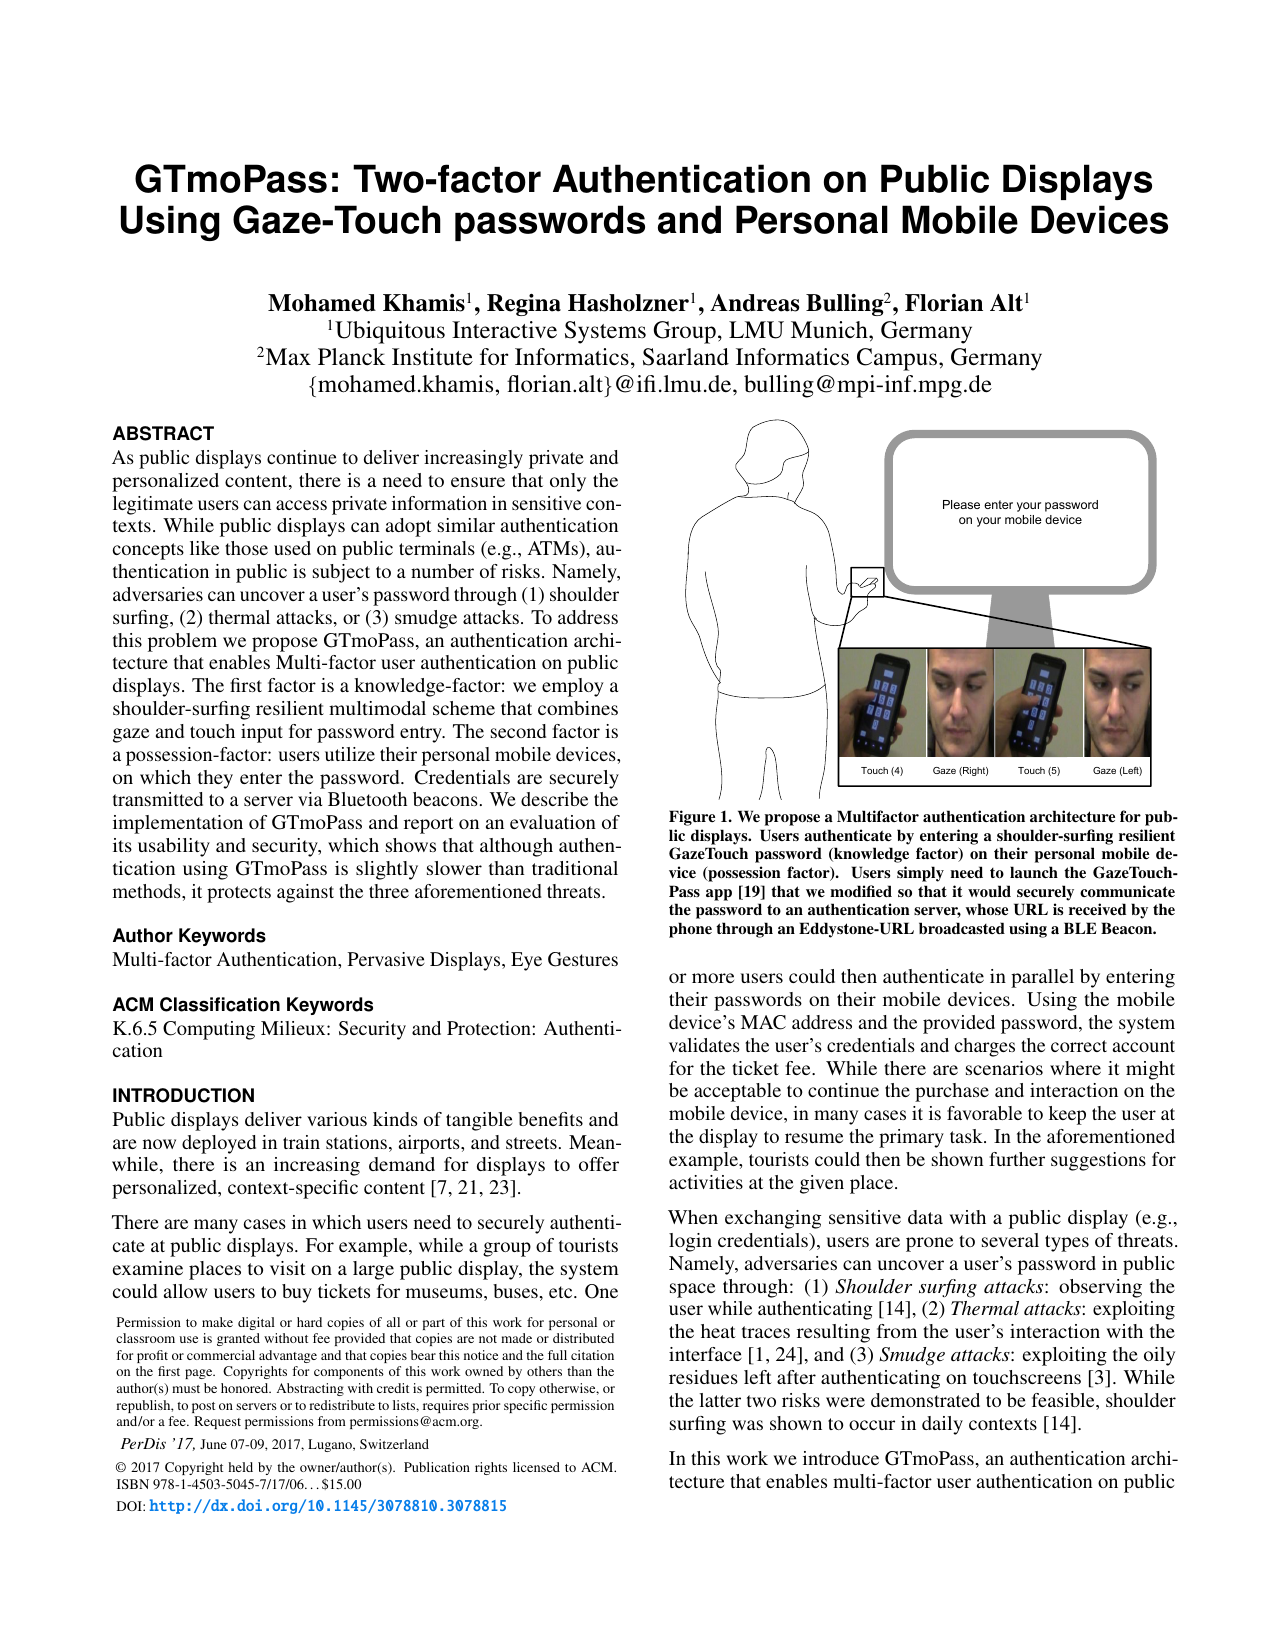 GTmoPass: Two-factor Authentication on Public Displays Using GazeTouch passwords and Personal Mobile Devices